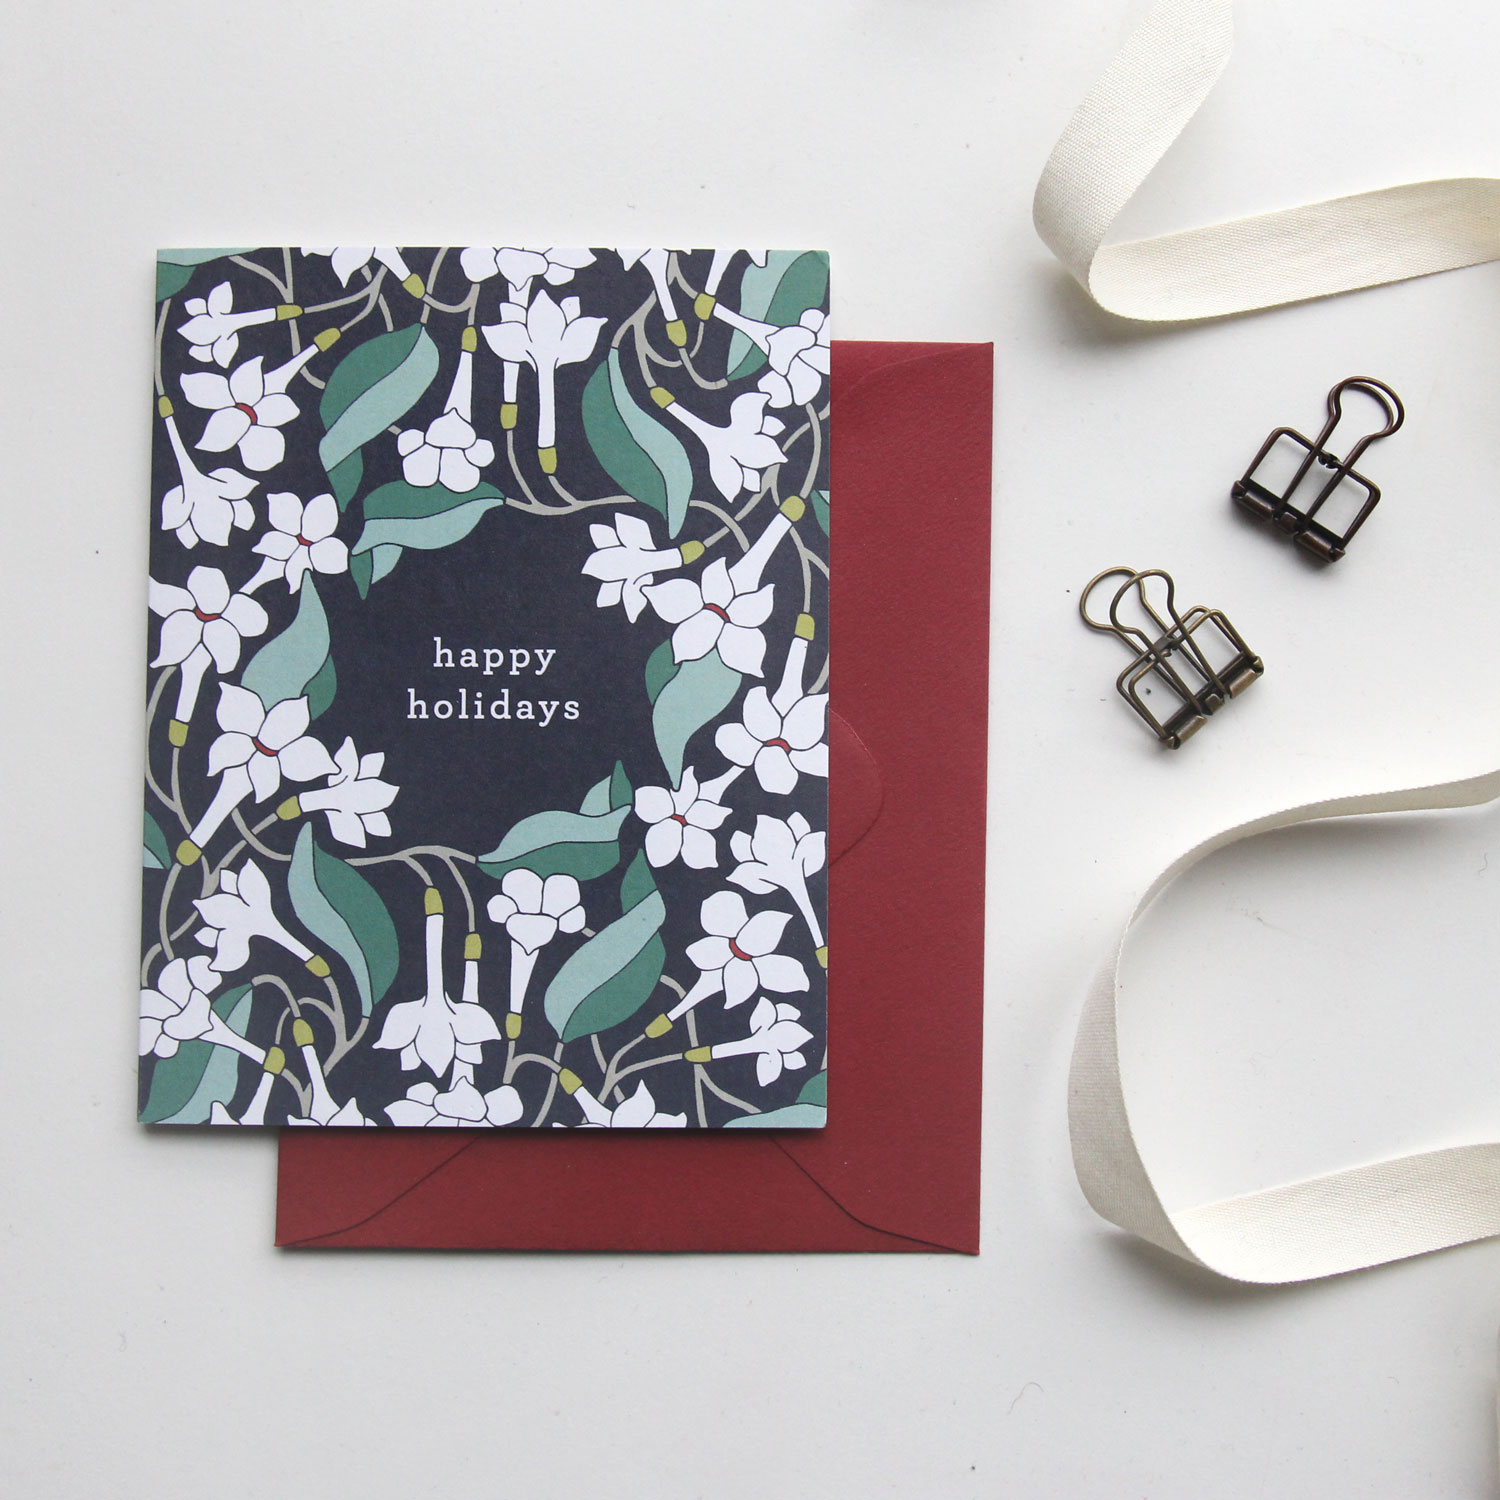 Happy Holidays Card - Christmas Cards 2018, Holiday Cards | Illustrated Floral Christmas Cards by Root & Branch Paper Co.